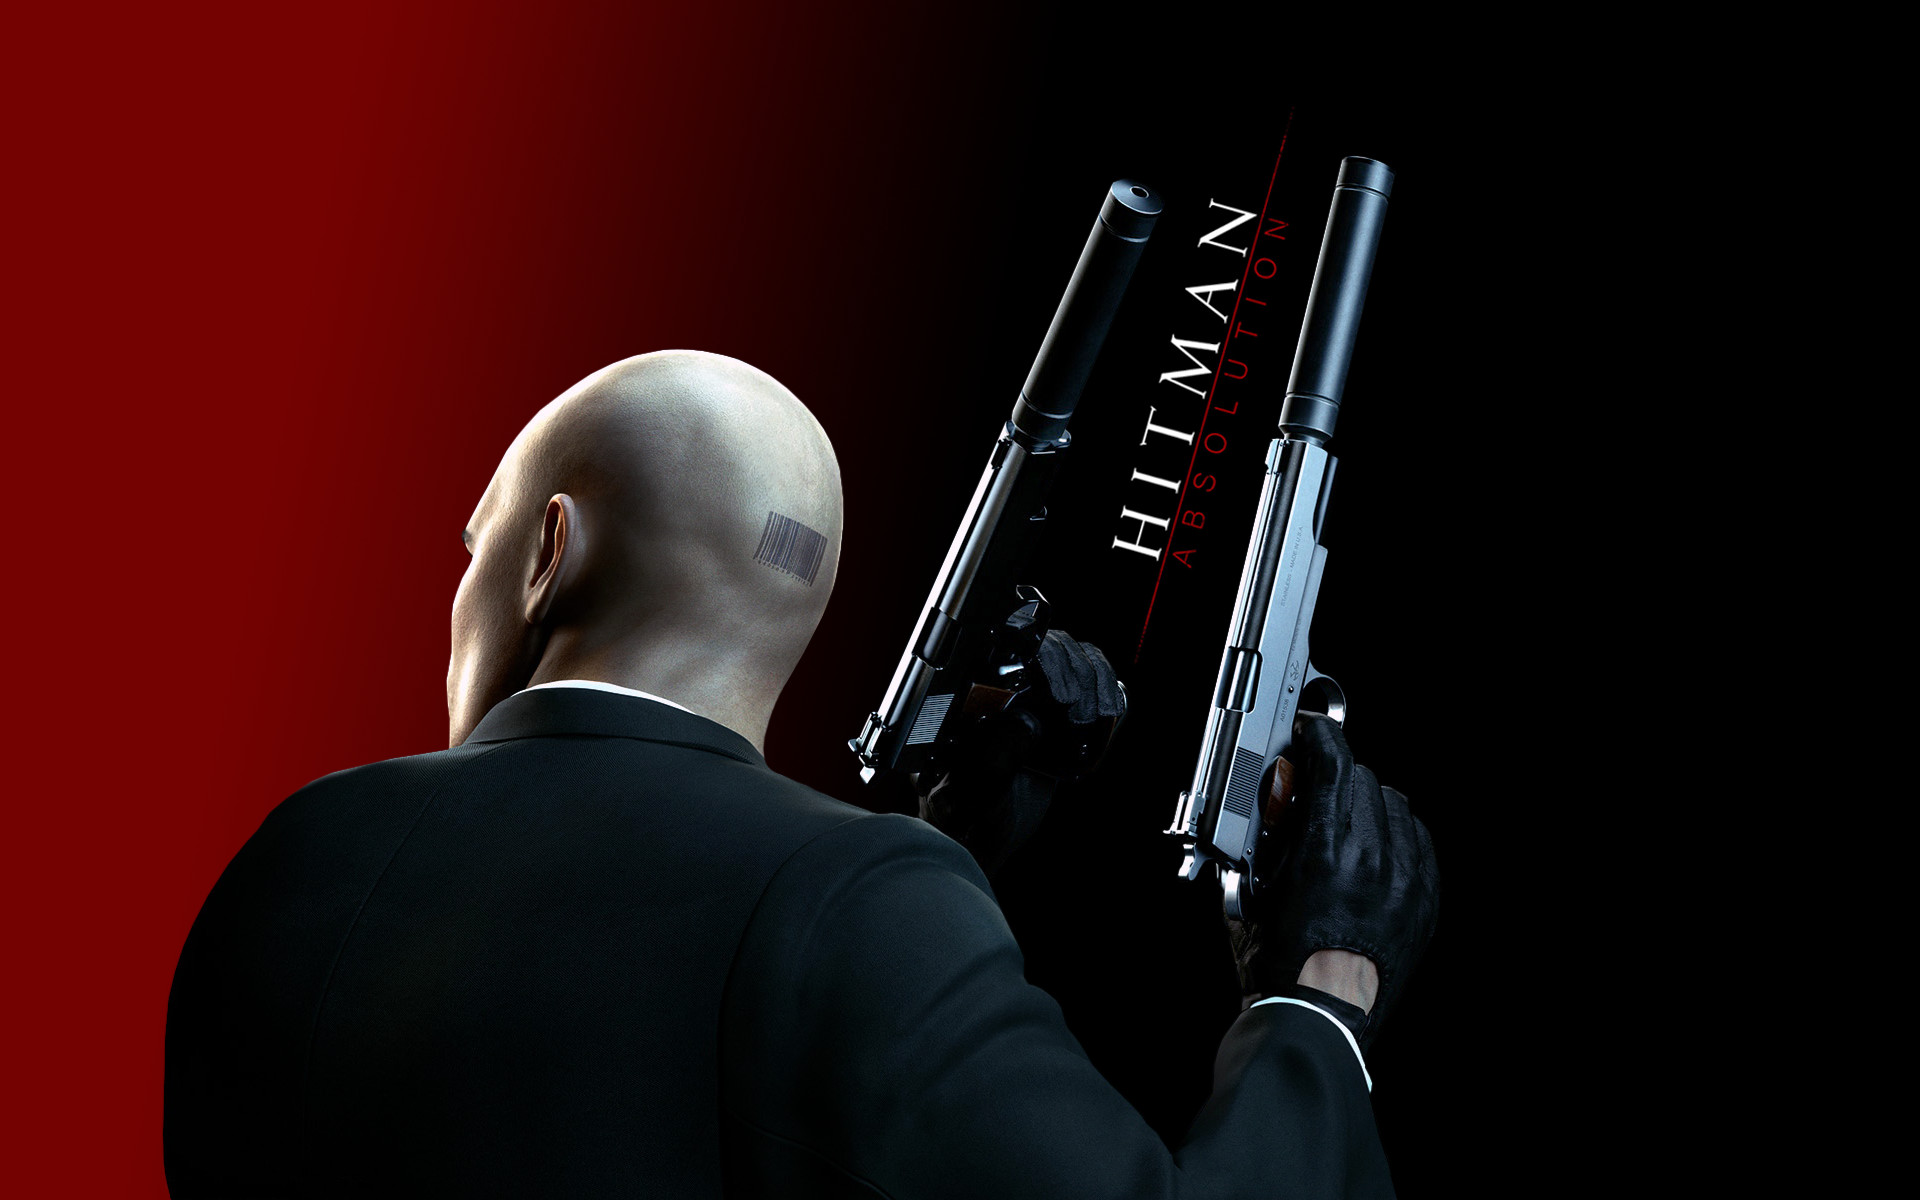 hitman absolution wallpapers 1920x1080 (78+ background pictures)